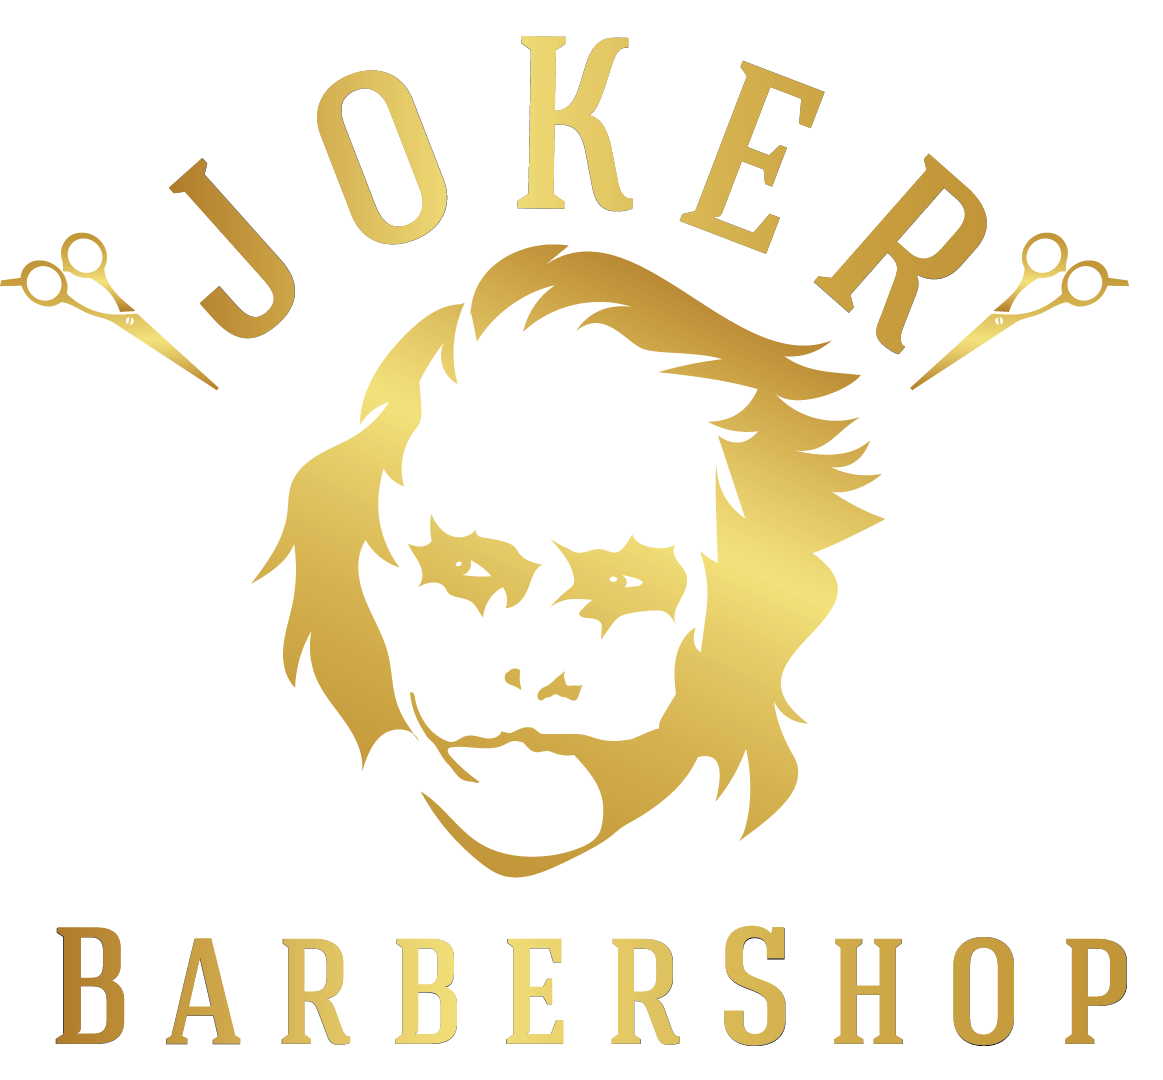 Joker BarberShop